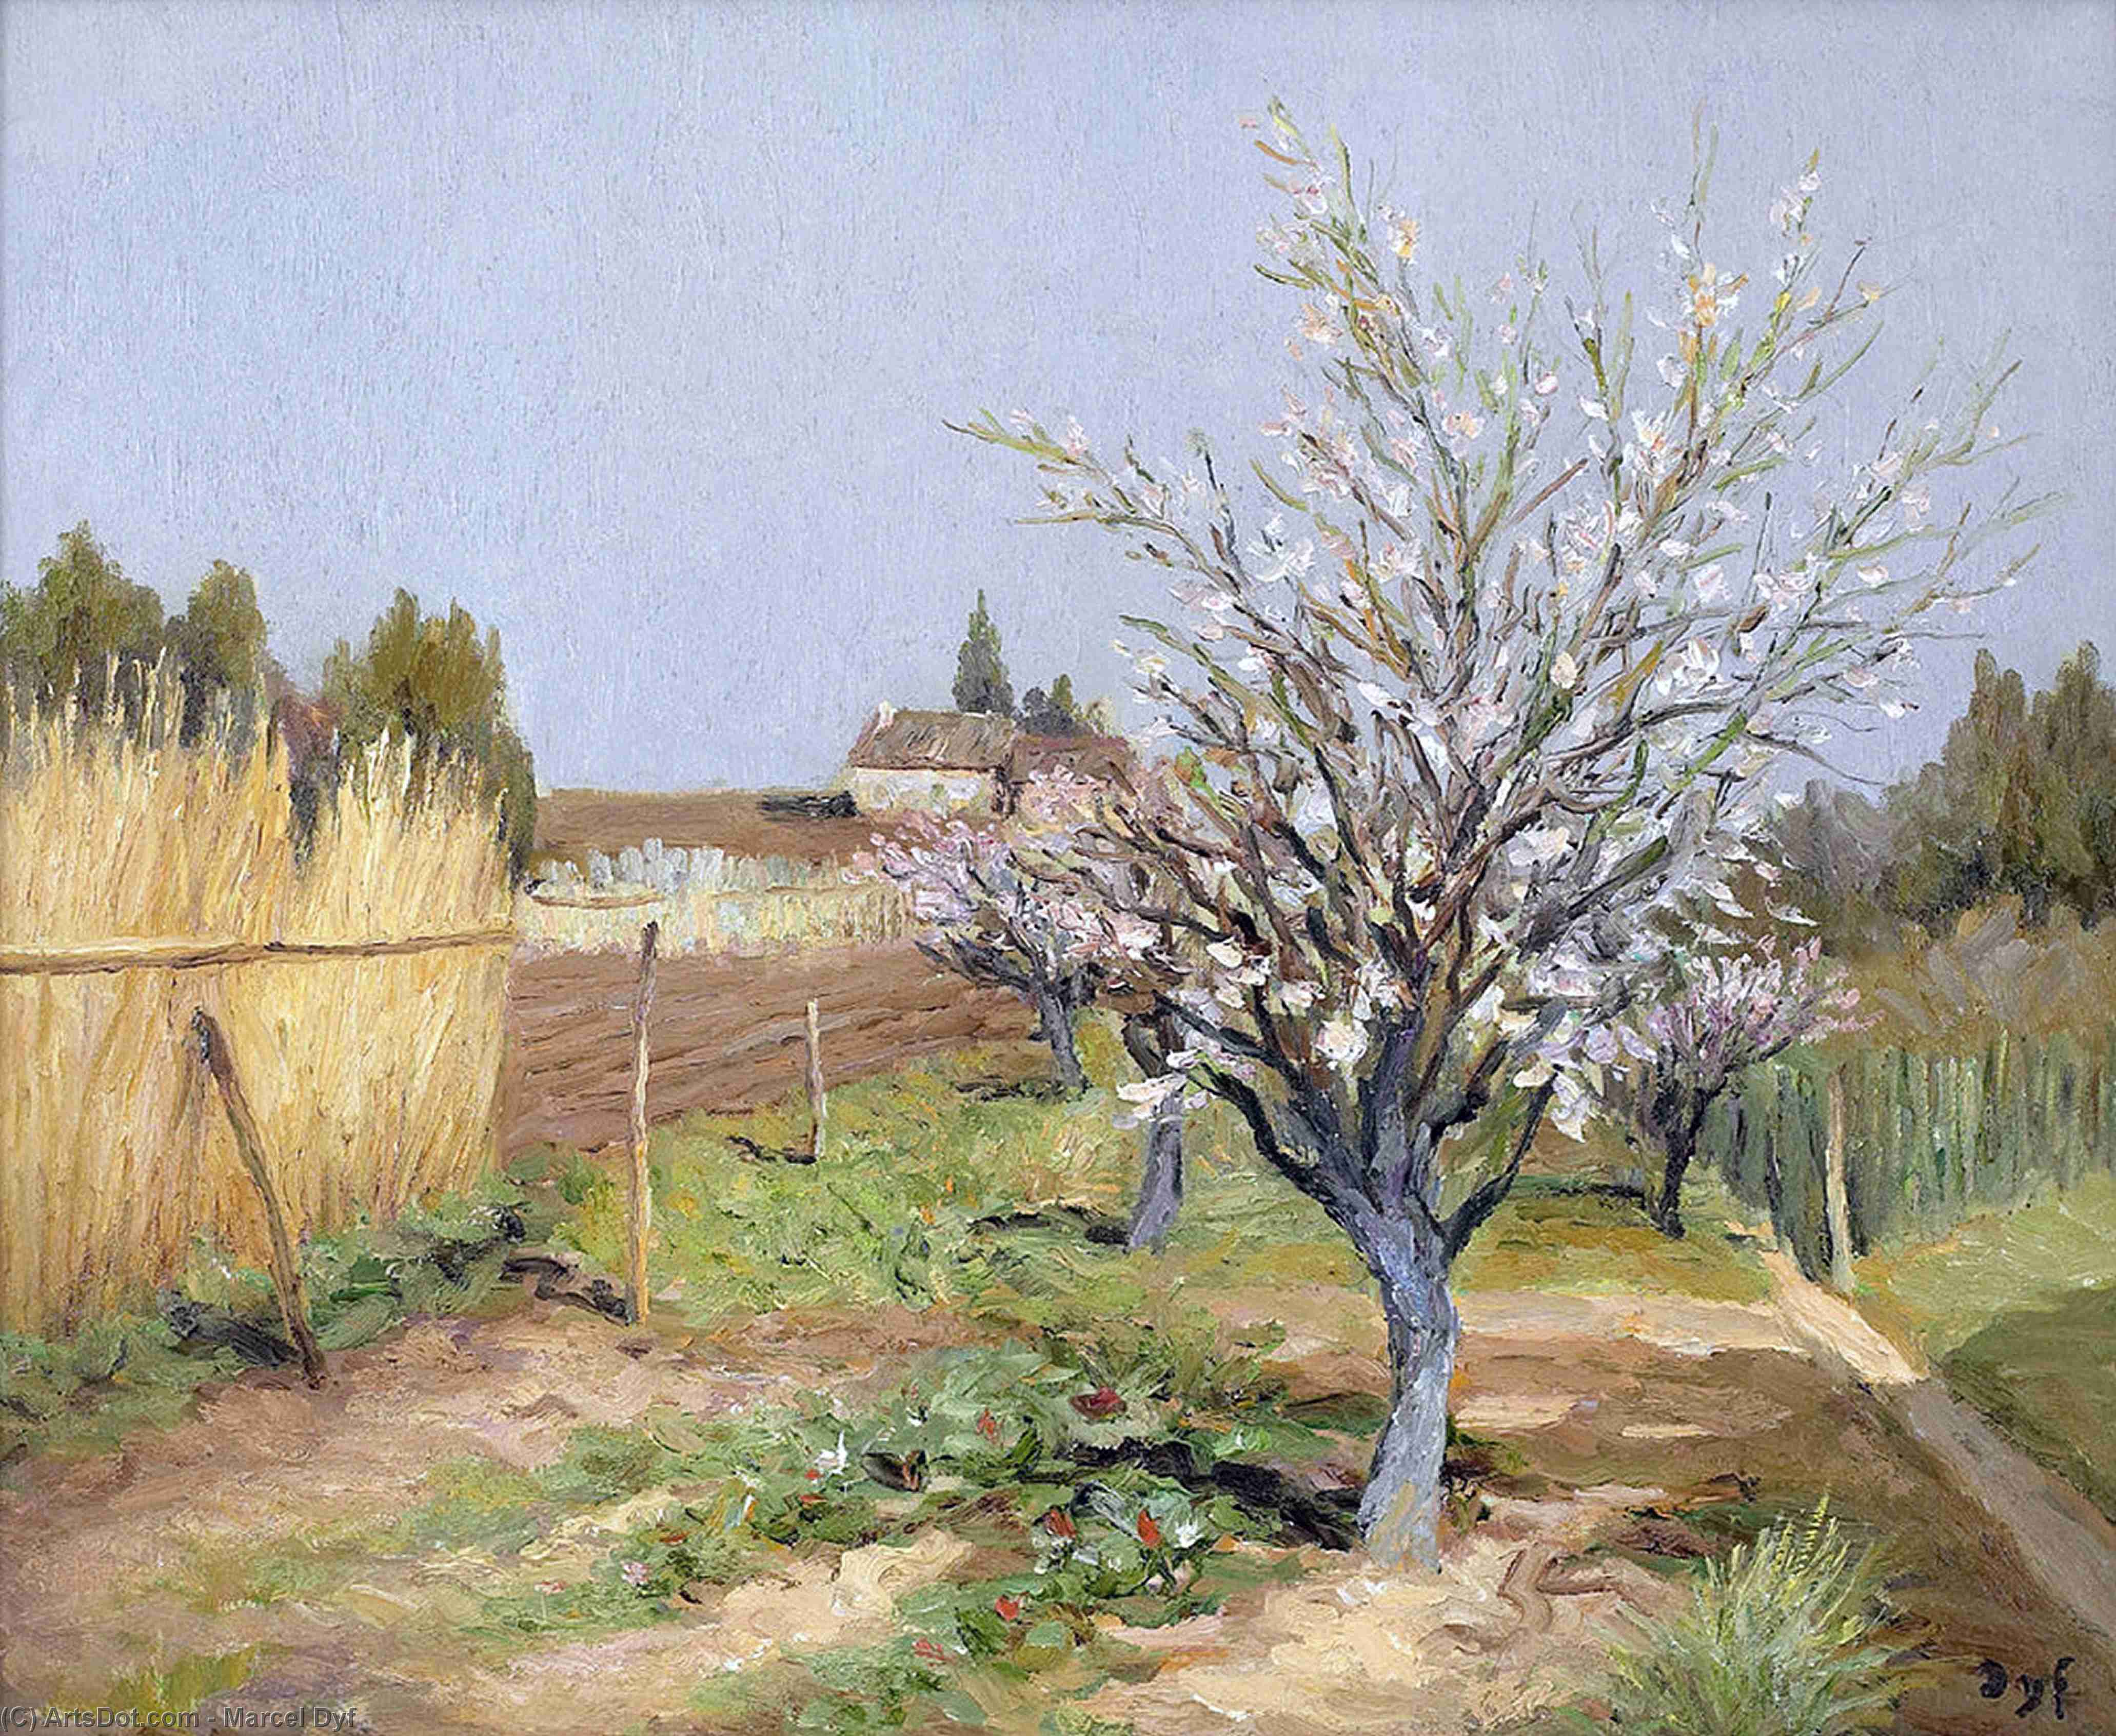 Orchard in Bloom by Marcel Dyf (1899-1985, France)